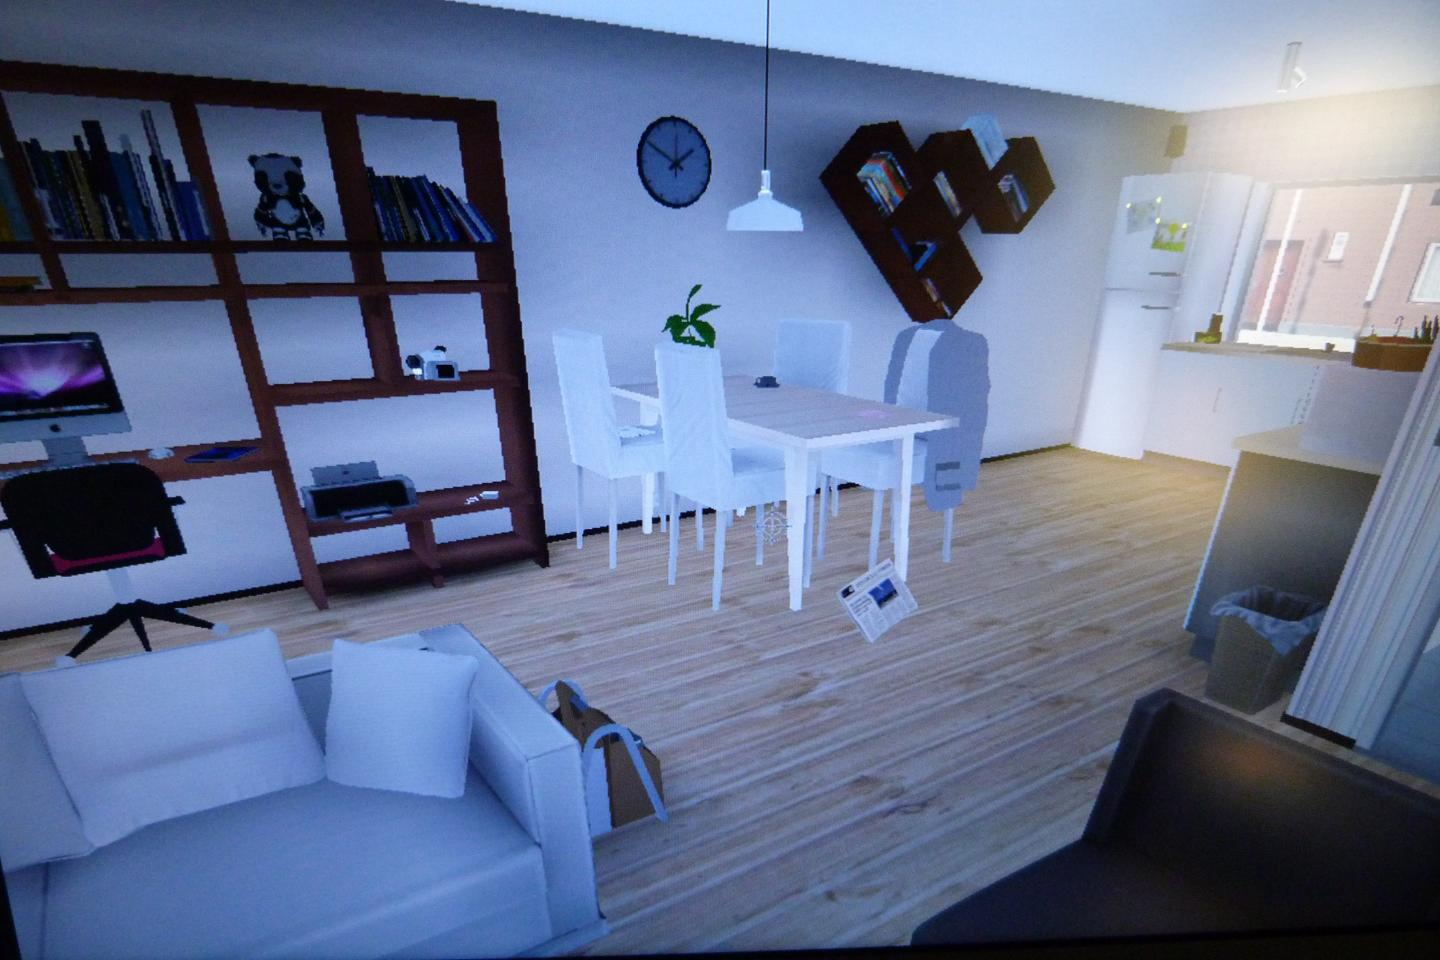 Interior of Virtual Reality House Built for the Burglars to Steal From